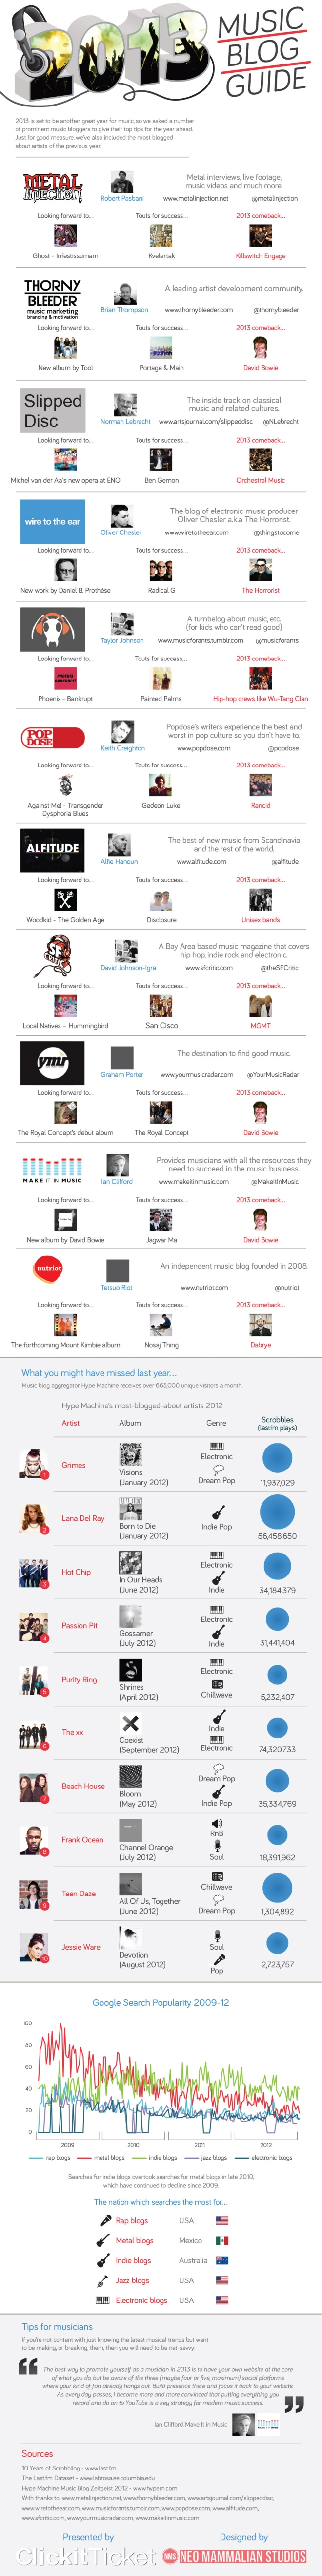 bloggers guide to music 2013 alfitude